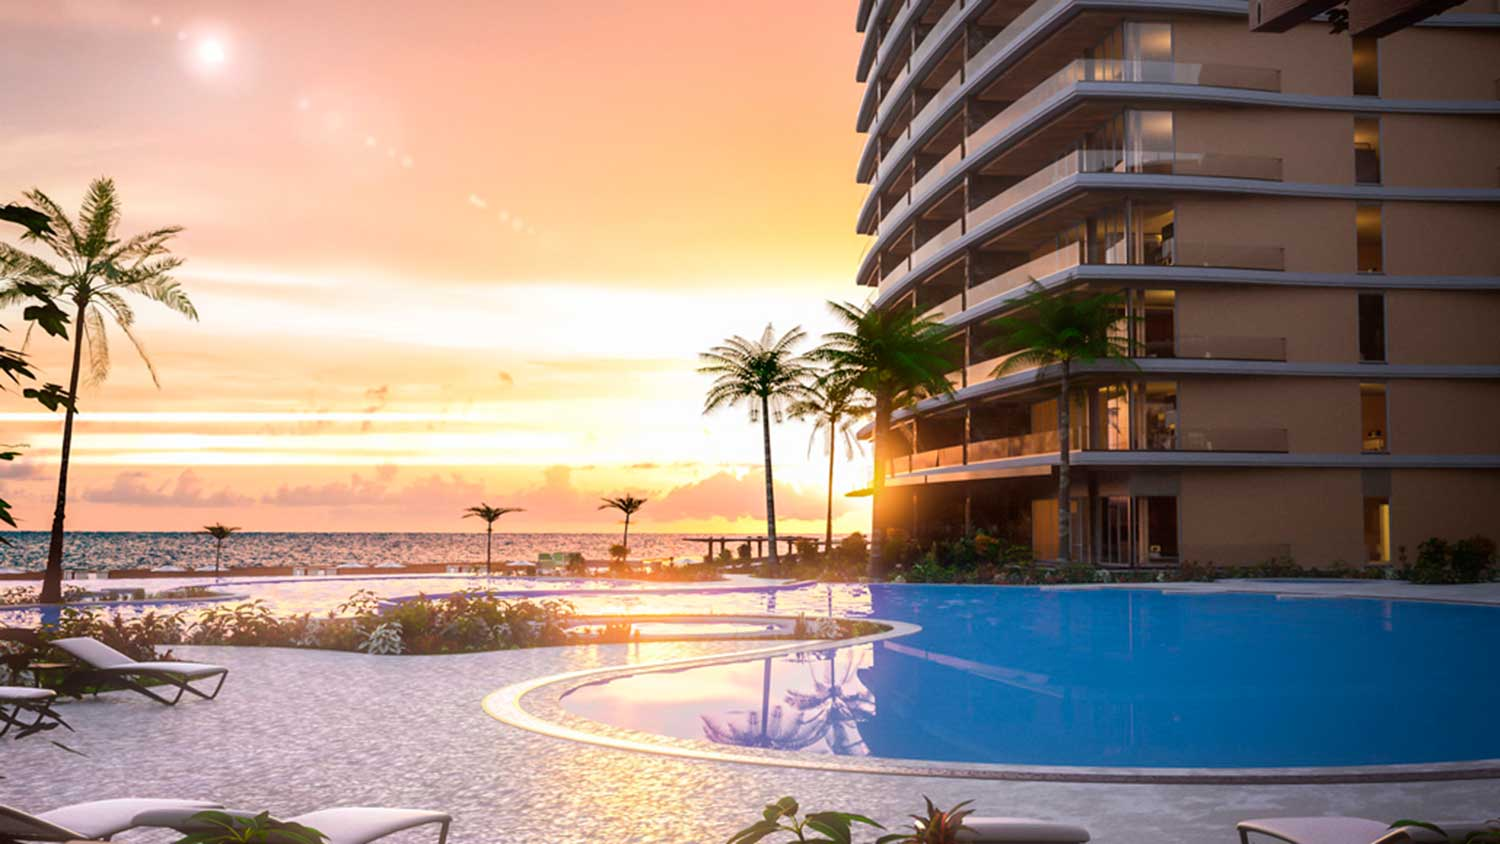 Luma, Real Estate Development in Nuevo Vallarta